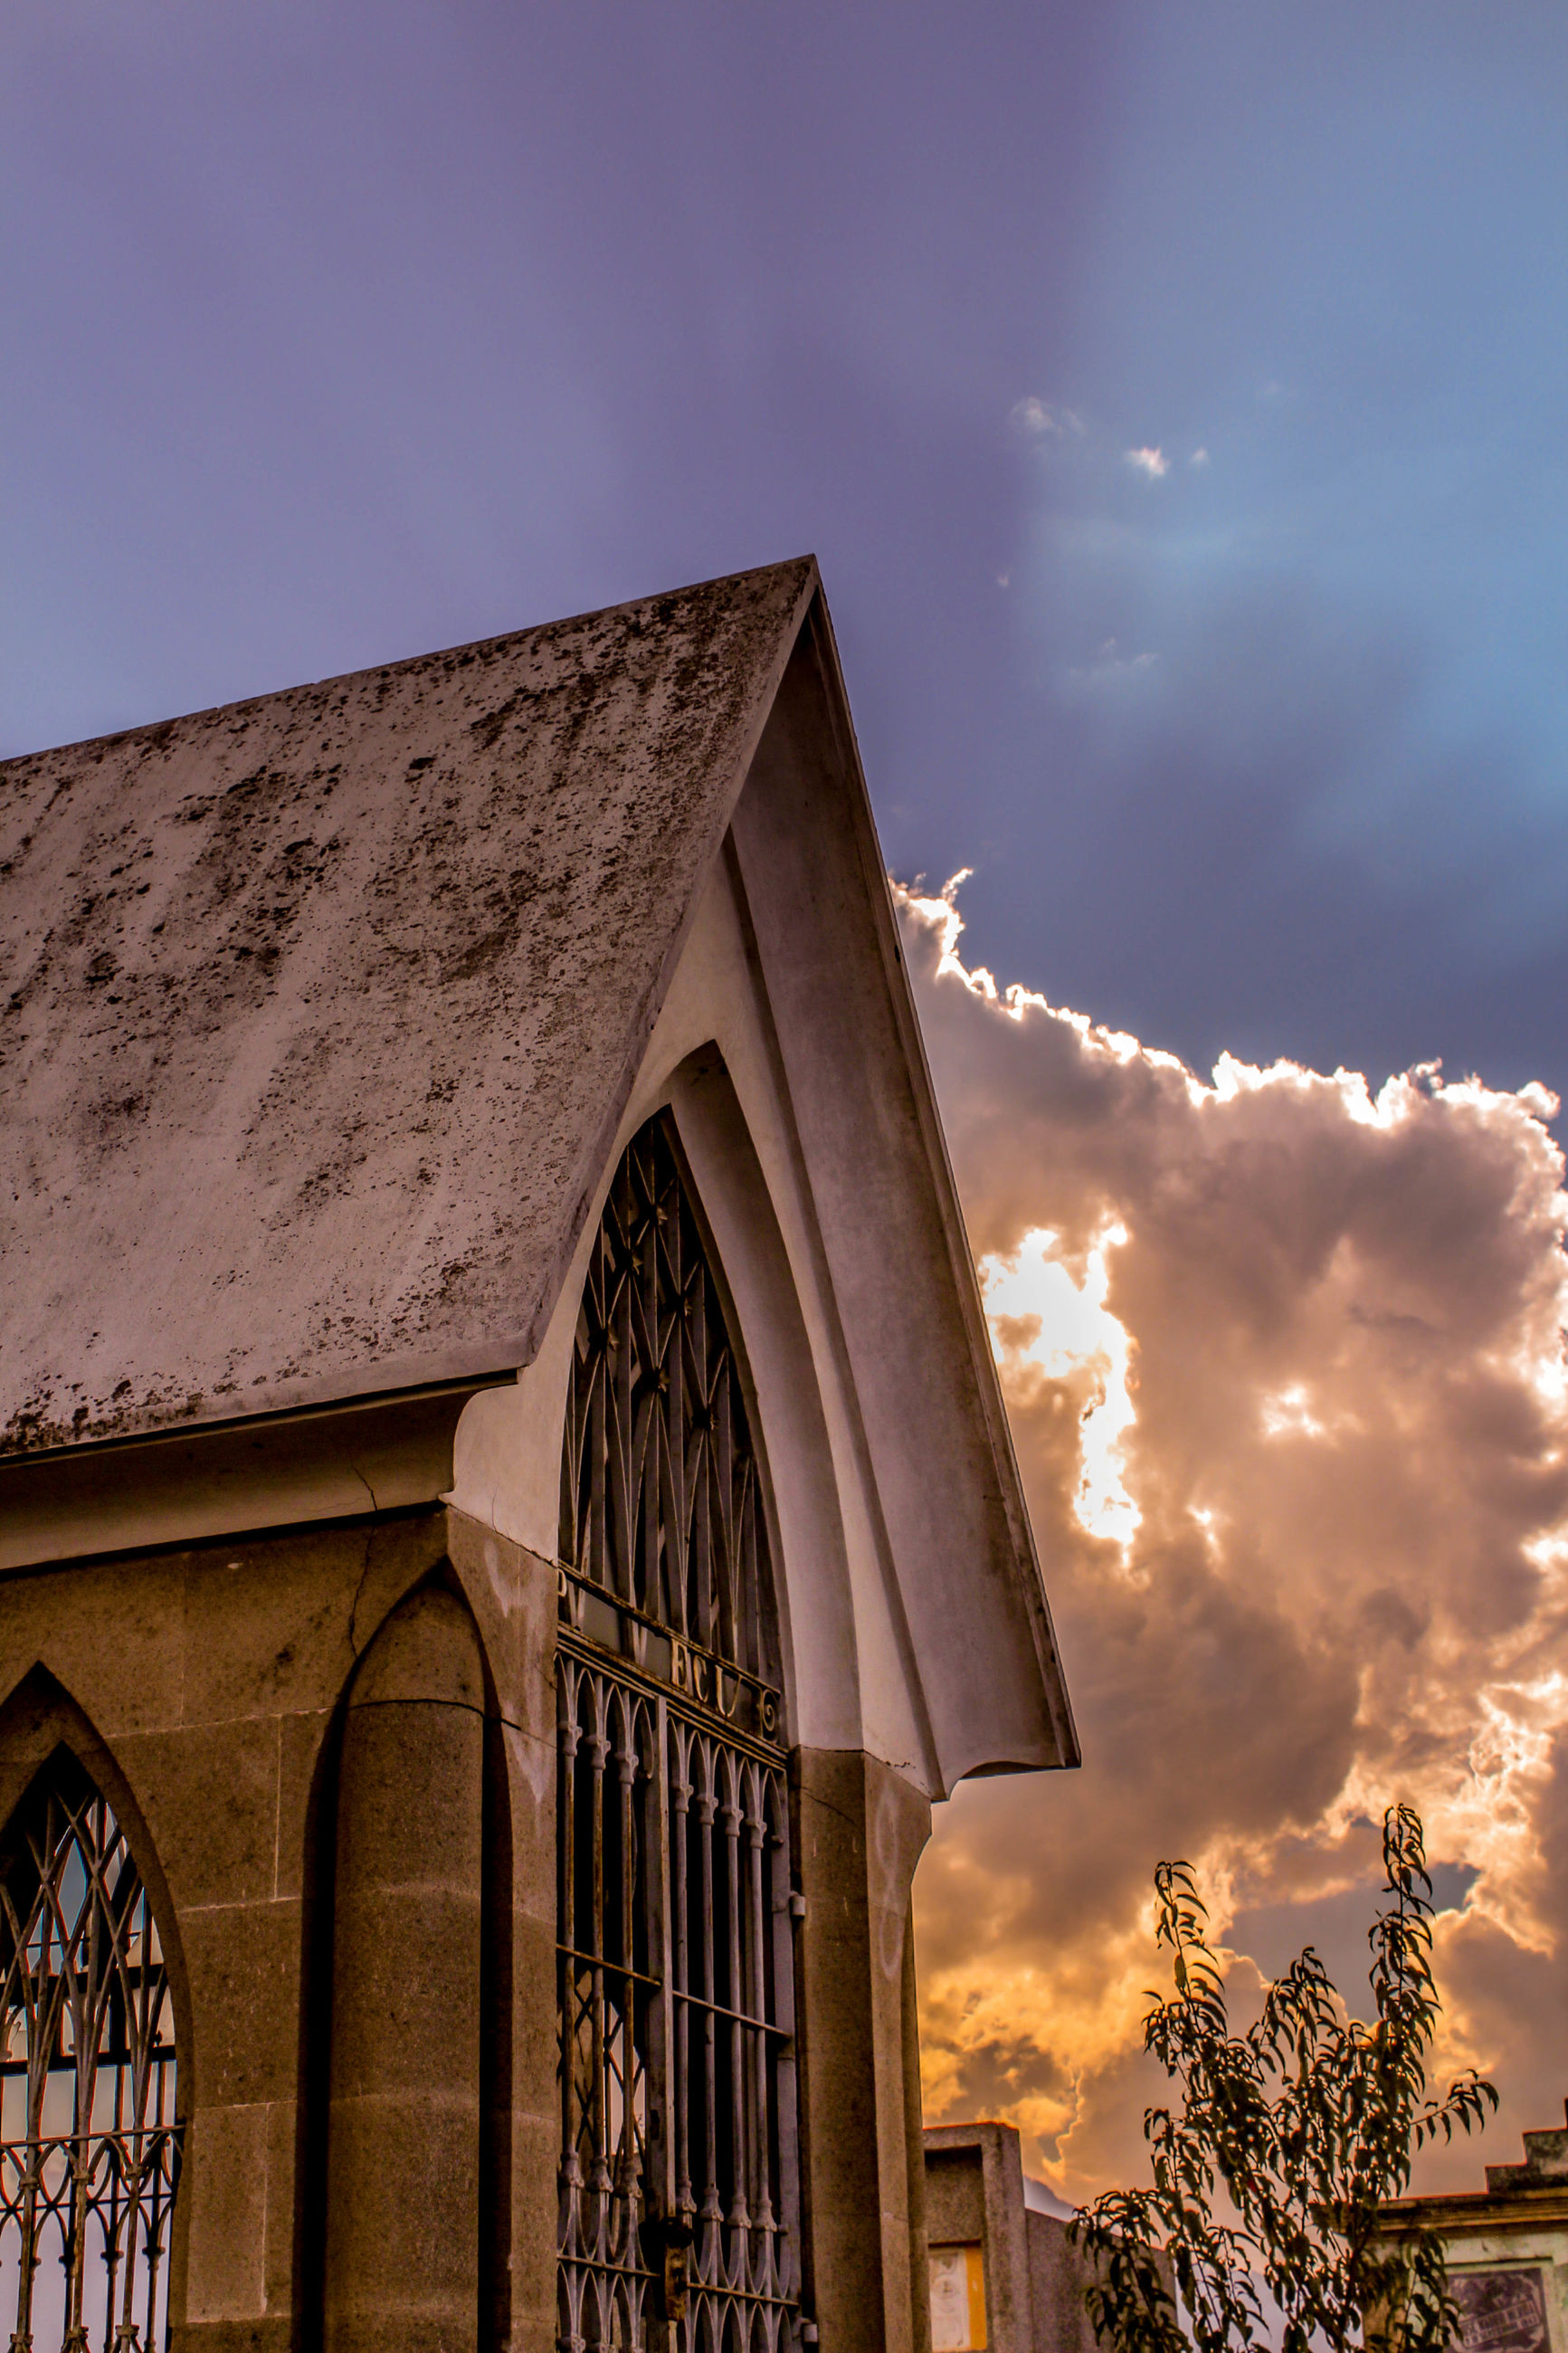 architecture, built structure, building exterior, low angle view, sky, cloud - sky, building, window, cloud, high section, outdoors, arch, no people, residential building, residential structure, house, facade, day, sunlight, city